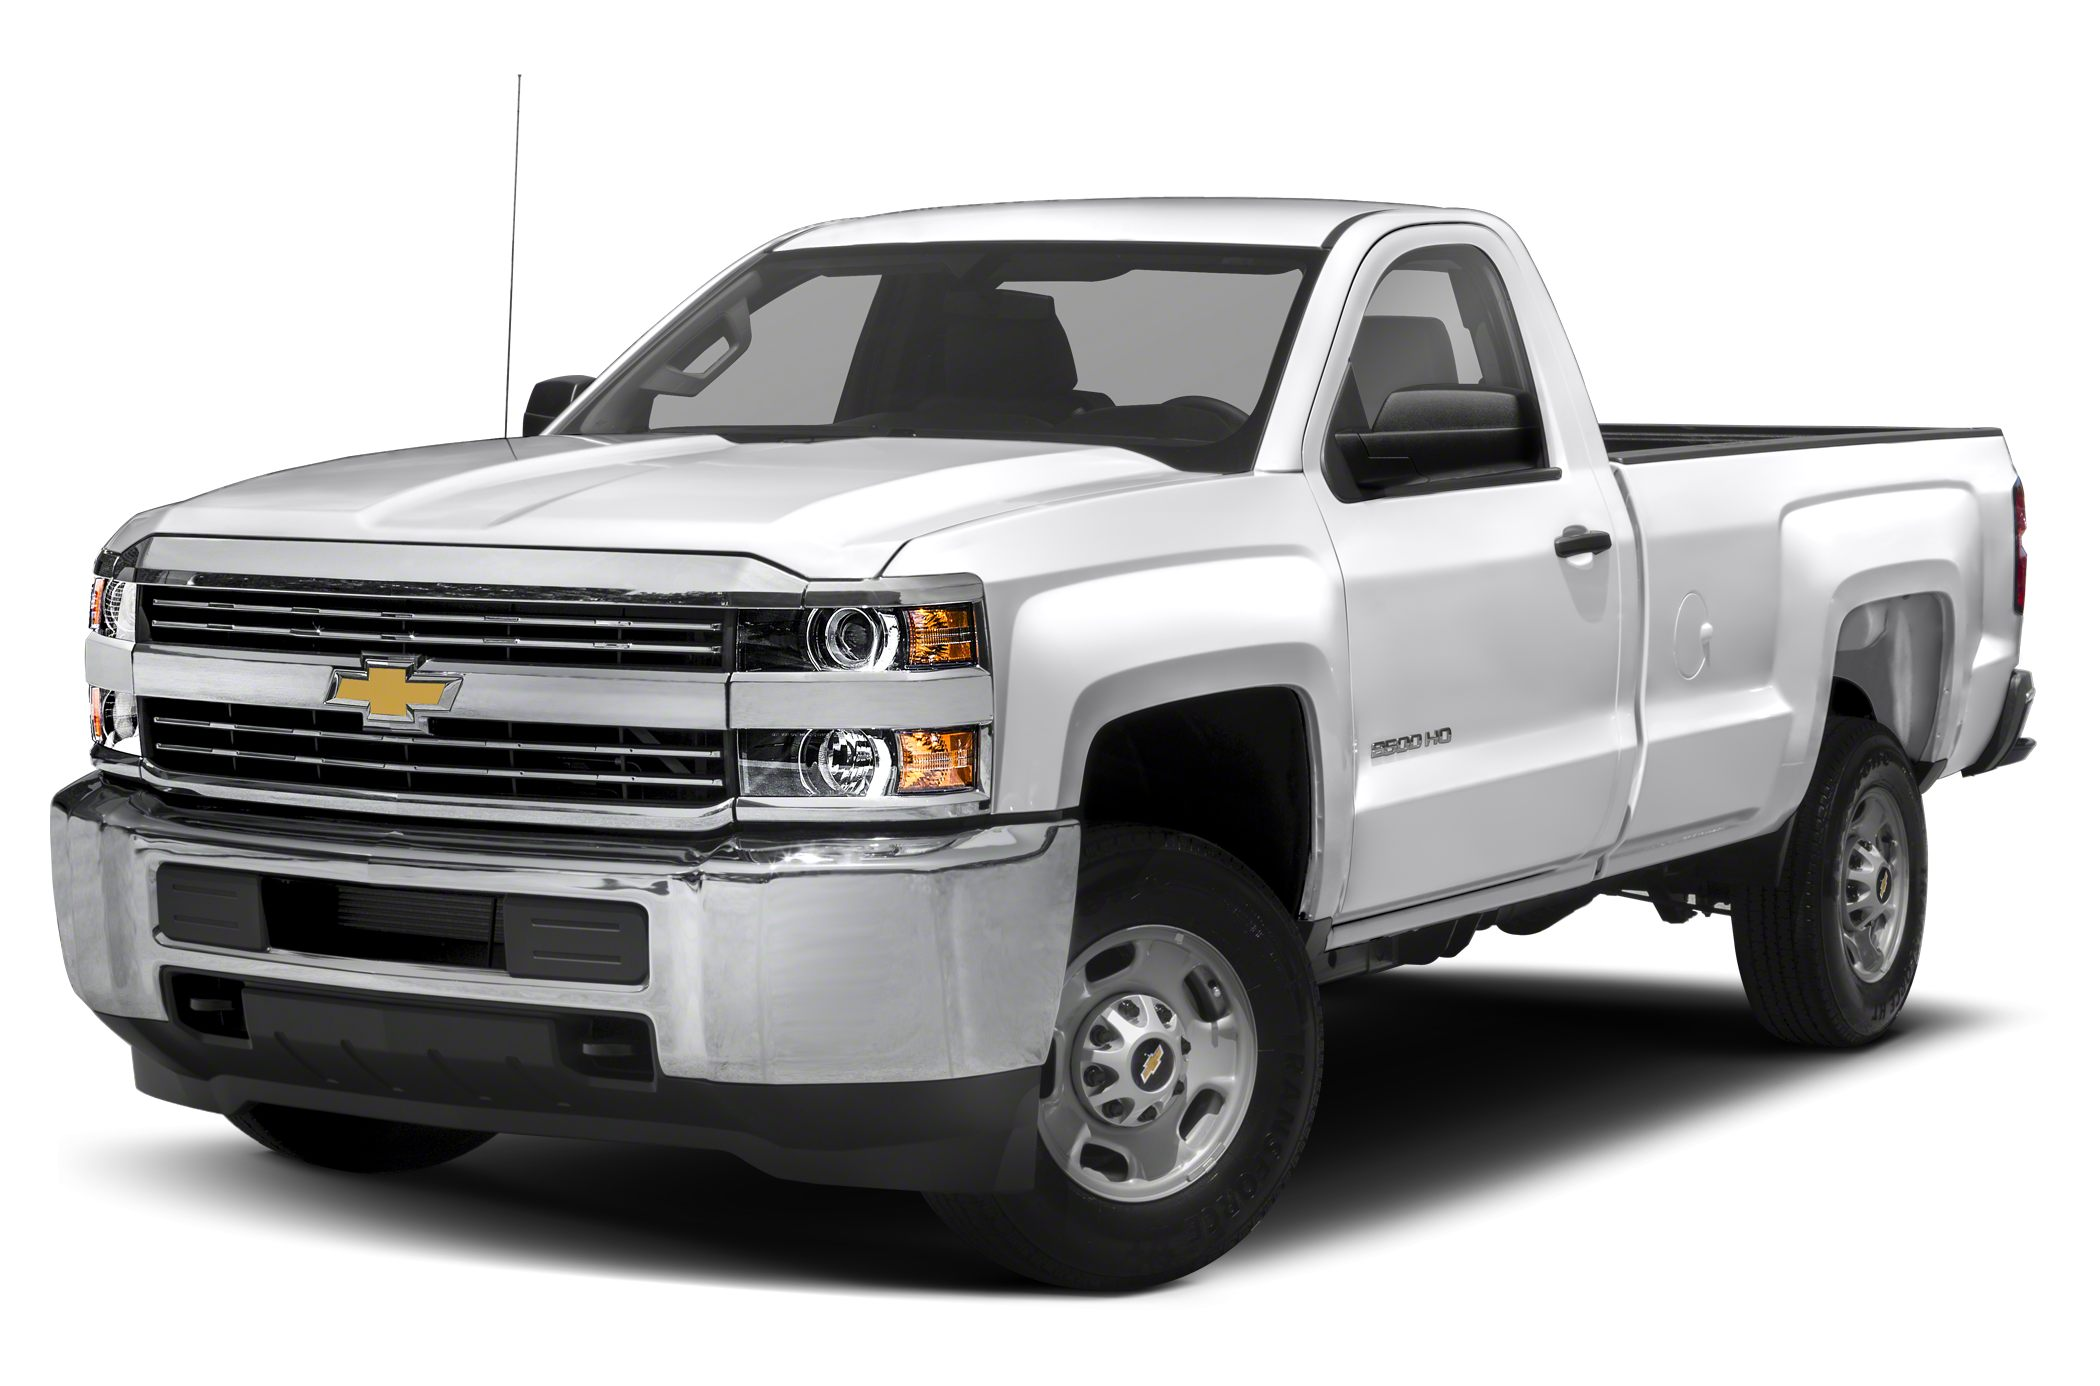 2017 Chevrolet Silverado 2500hd Carhartt Concept Photo